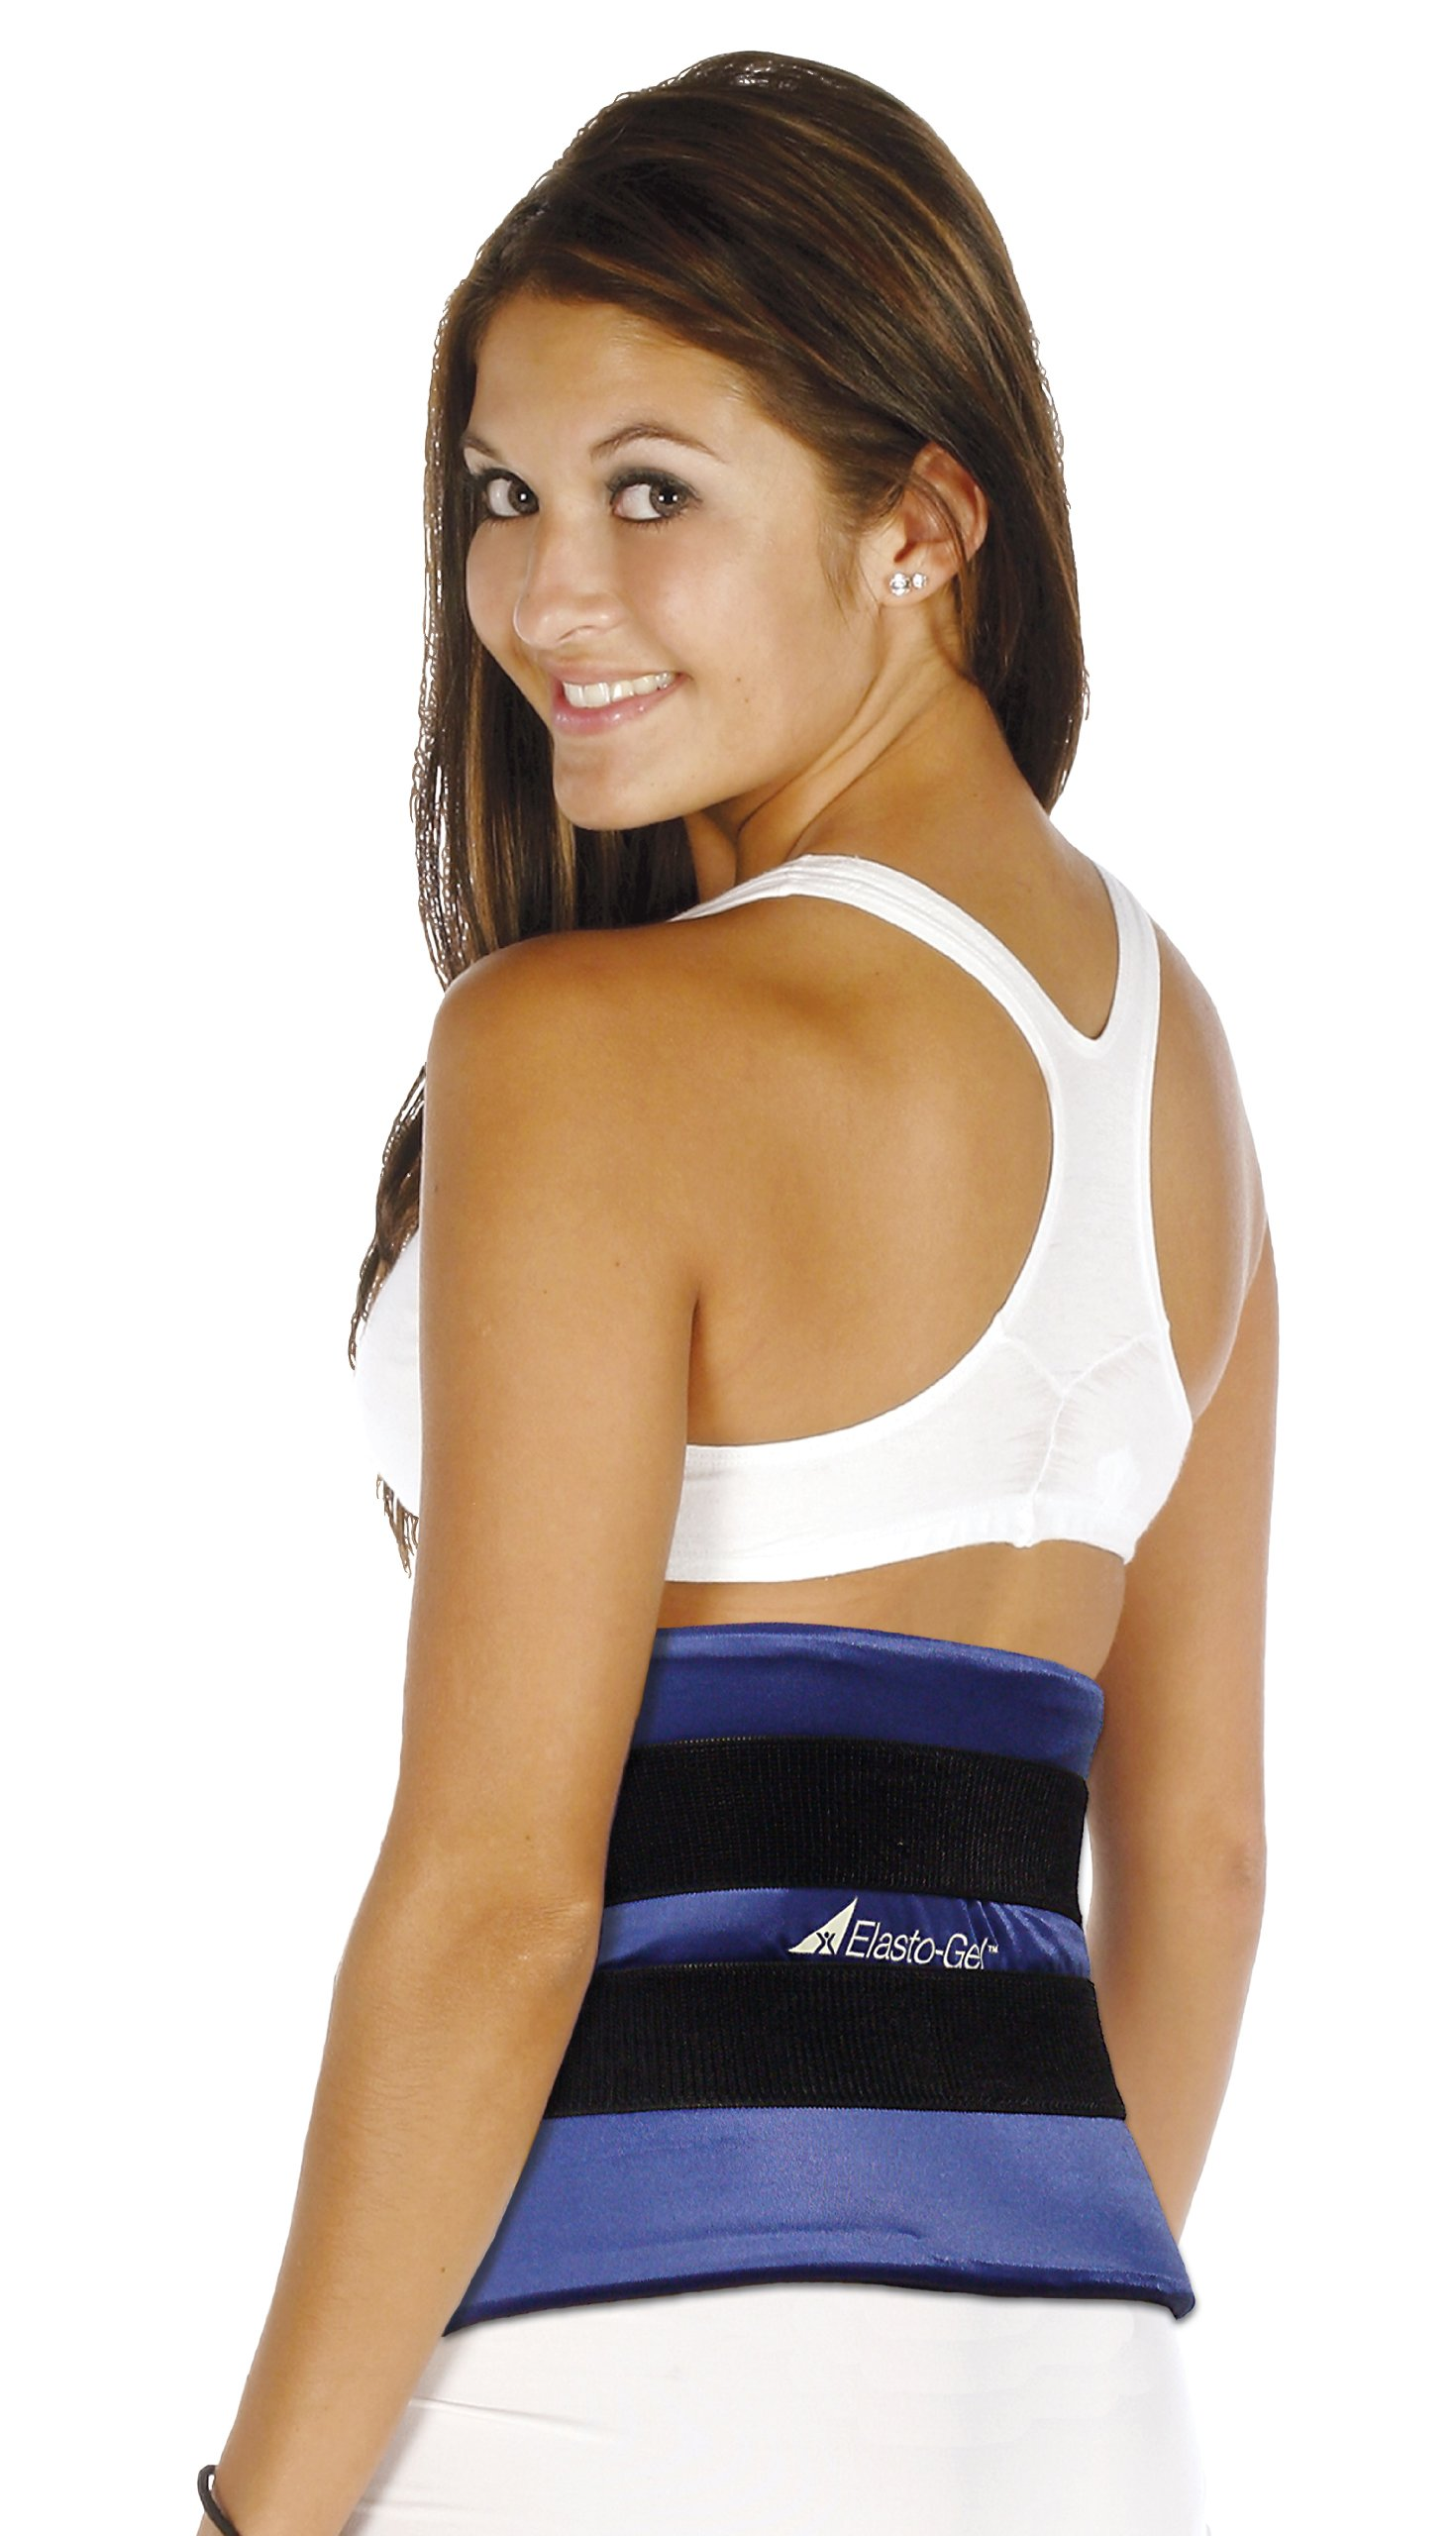 Elasto-gel Therapy Wrap, Hot/cold Pack , 9'' X 24'' Made Utilizing a Tough, Flexible, High-glycerin Gel That Is Covered with a Four-way Stretch Material That Allows Maximum Conformity, Hot and Cold Transfer, and Comfort